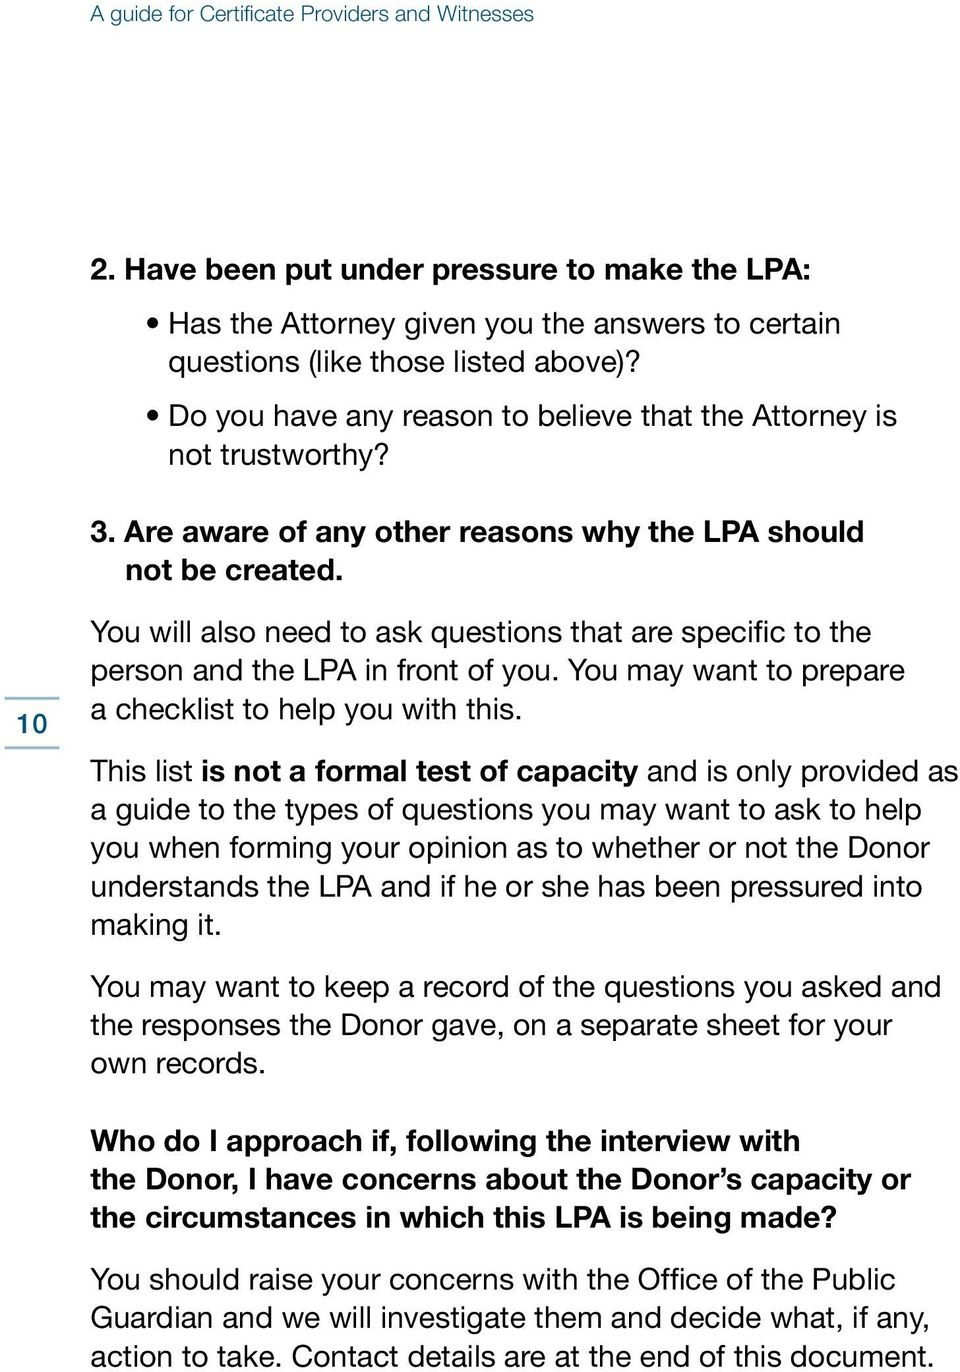 10 You will also need to ask questions that are specific to the person and the LPA in front of you. You may want to prepare a checklist to help you with this.